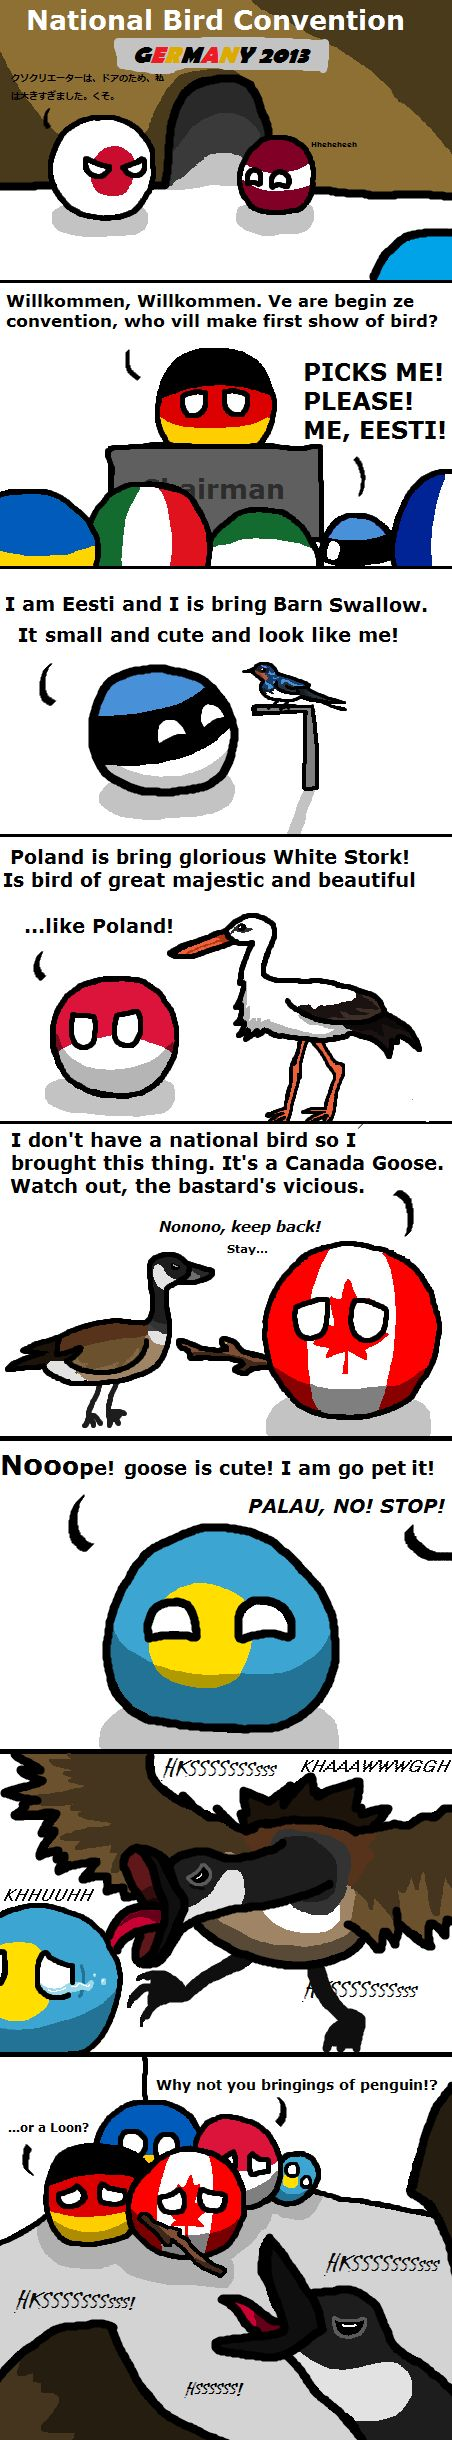 141 best polandball images on pinterest hetalia funny comics